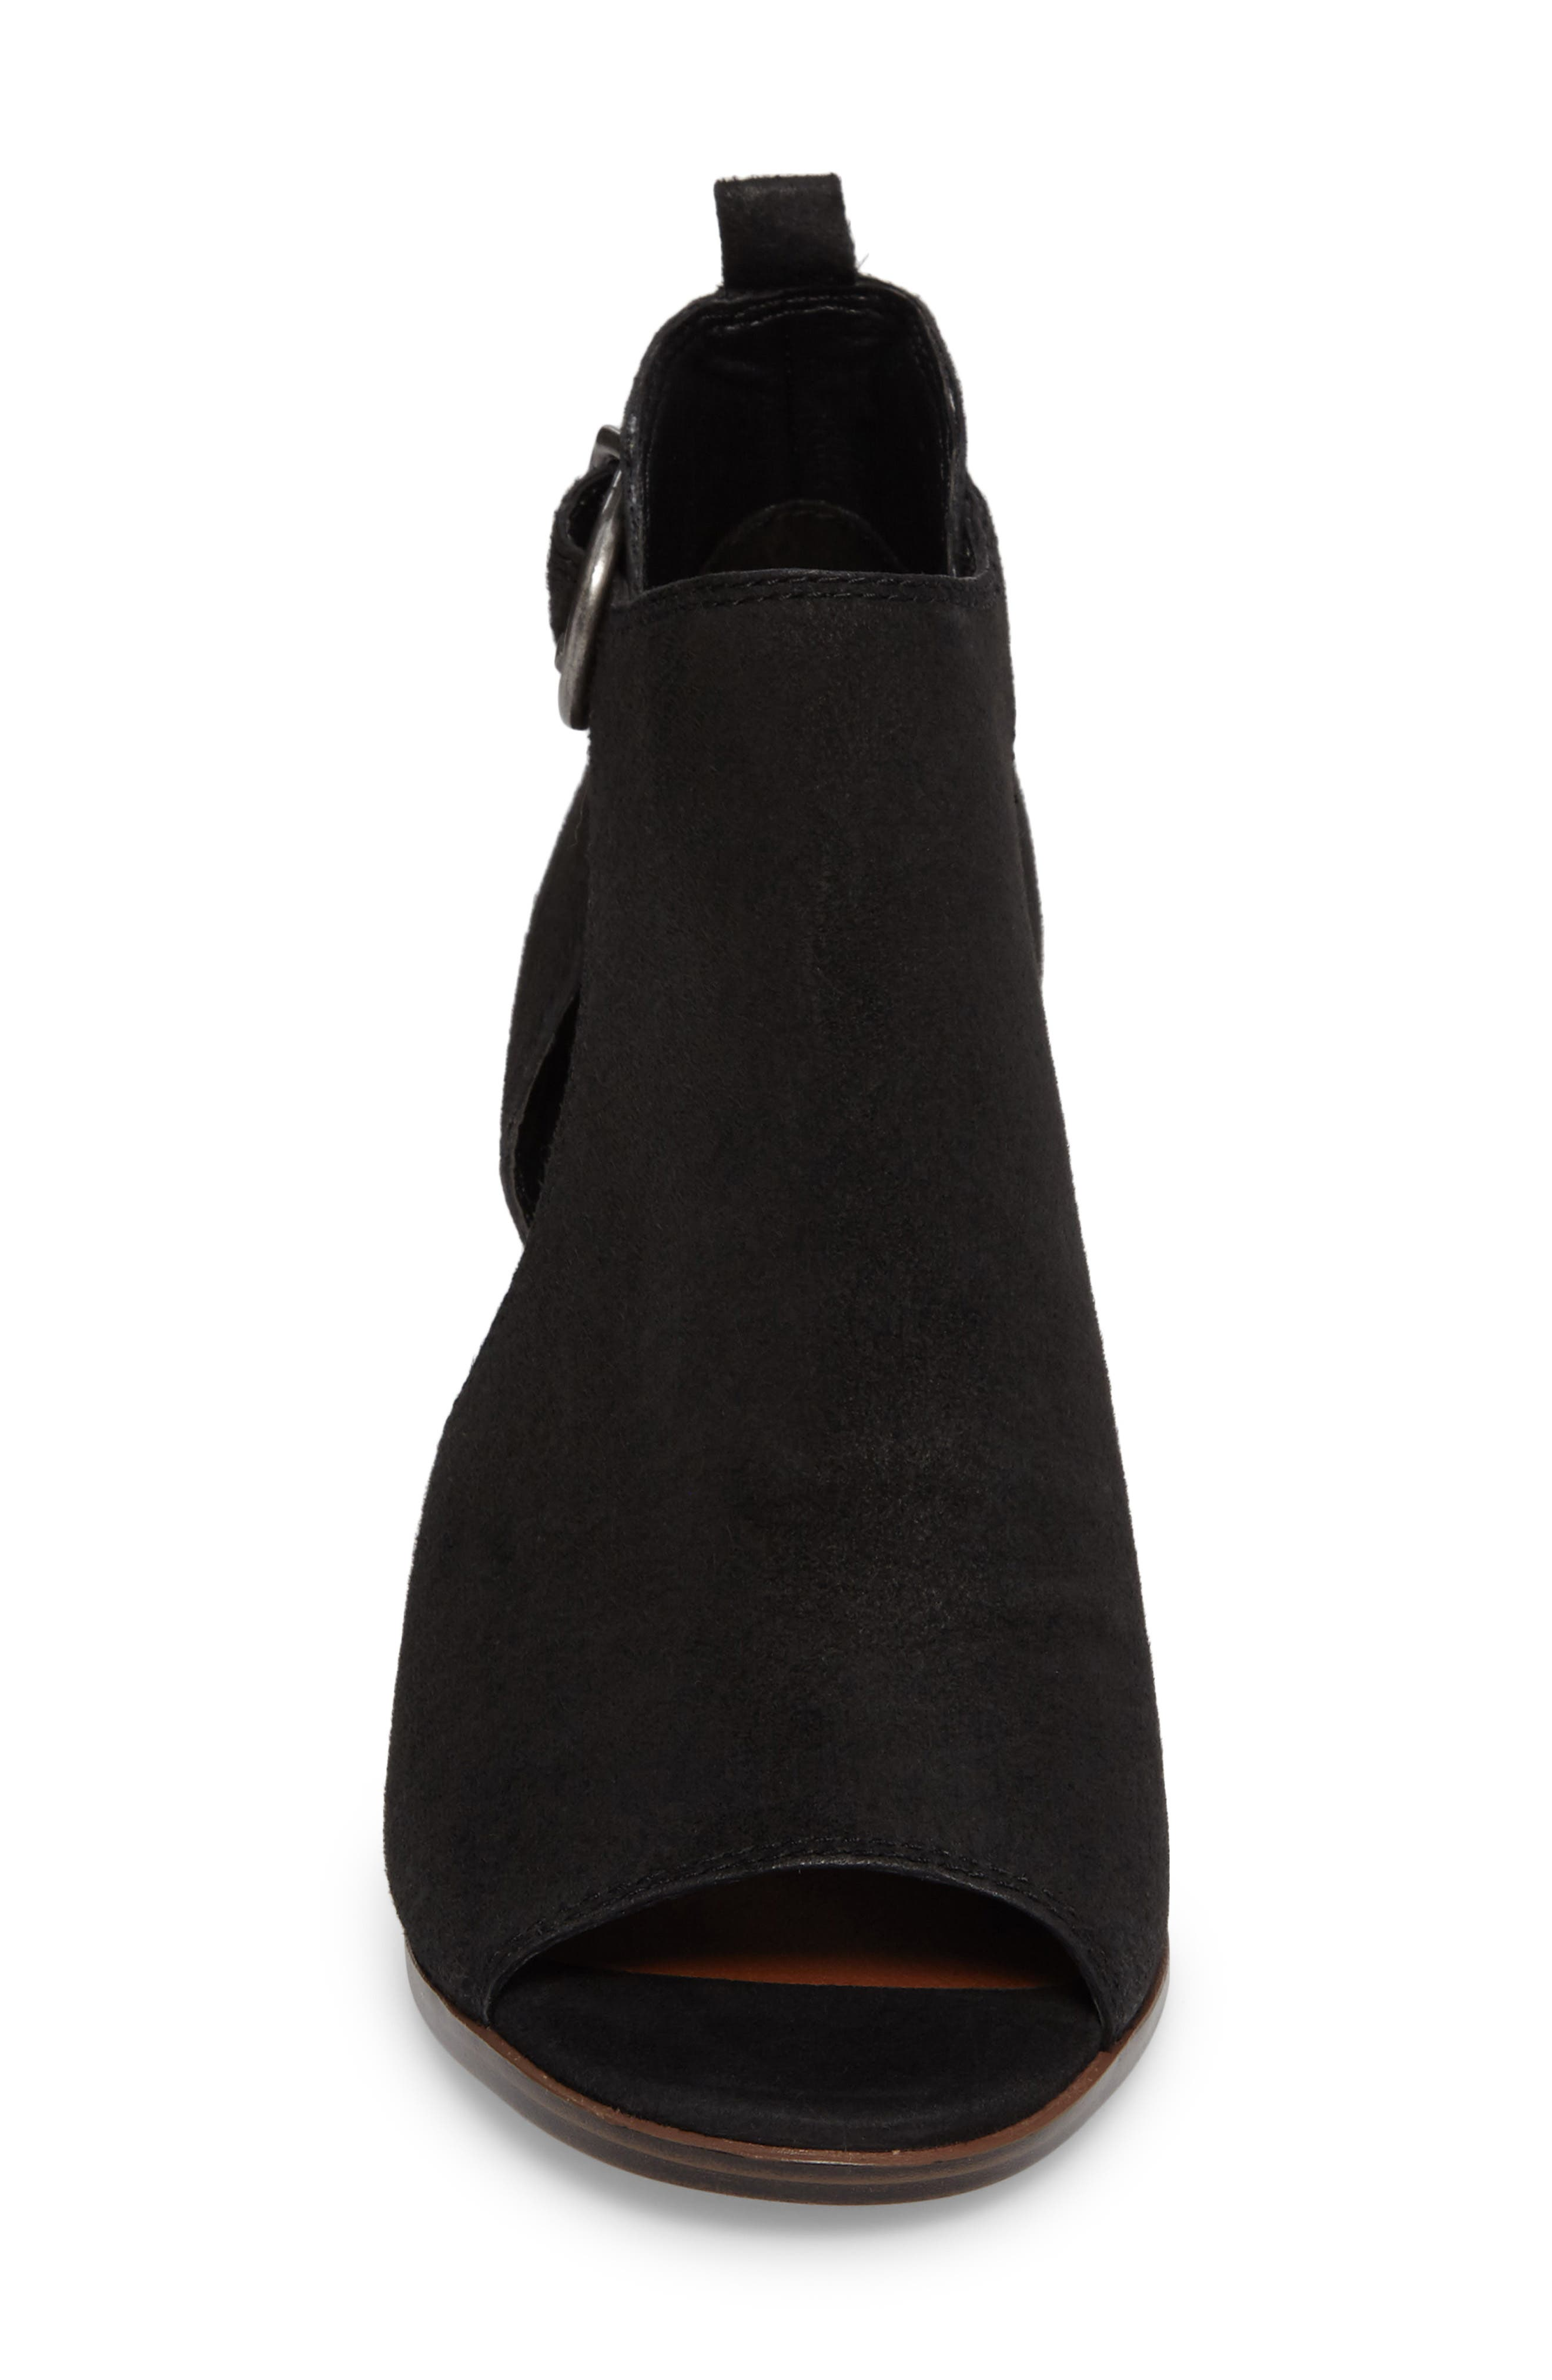 Oona Open Side Bootie,                             Alternate thumbnail 4, color,                             001